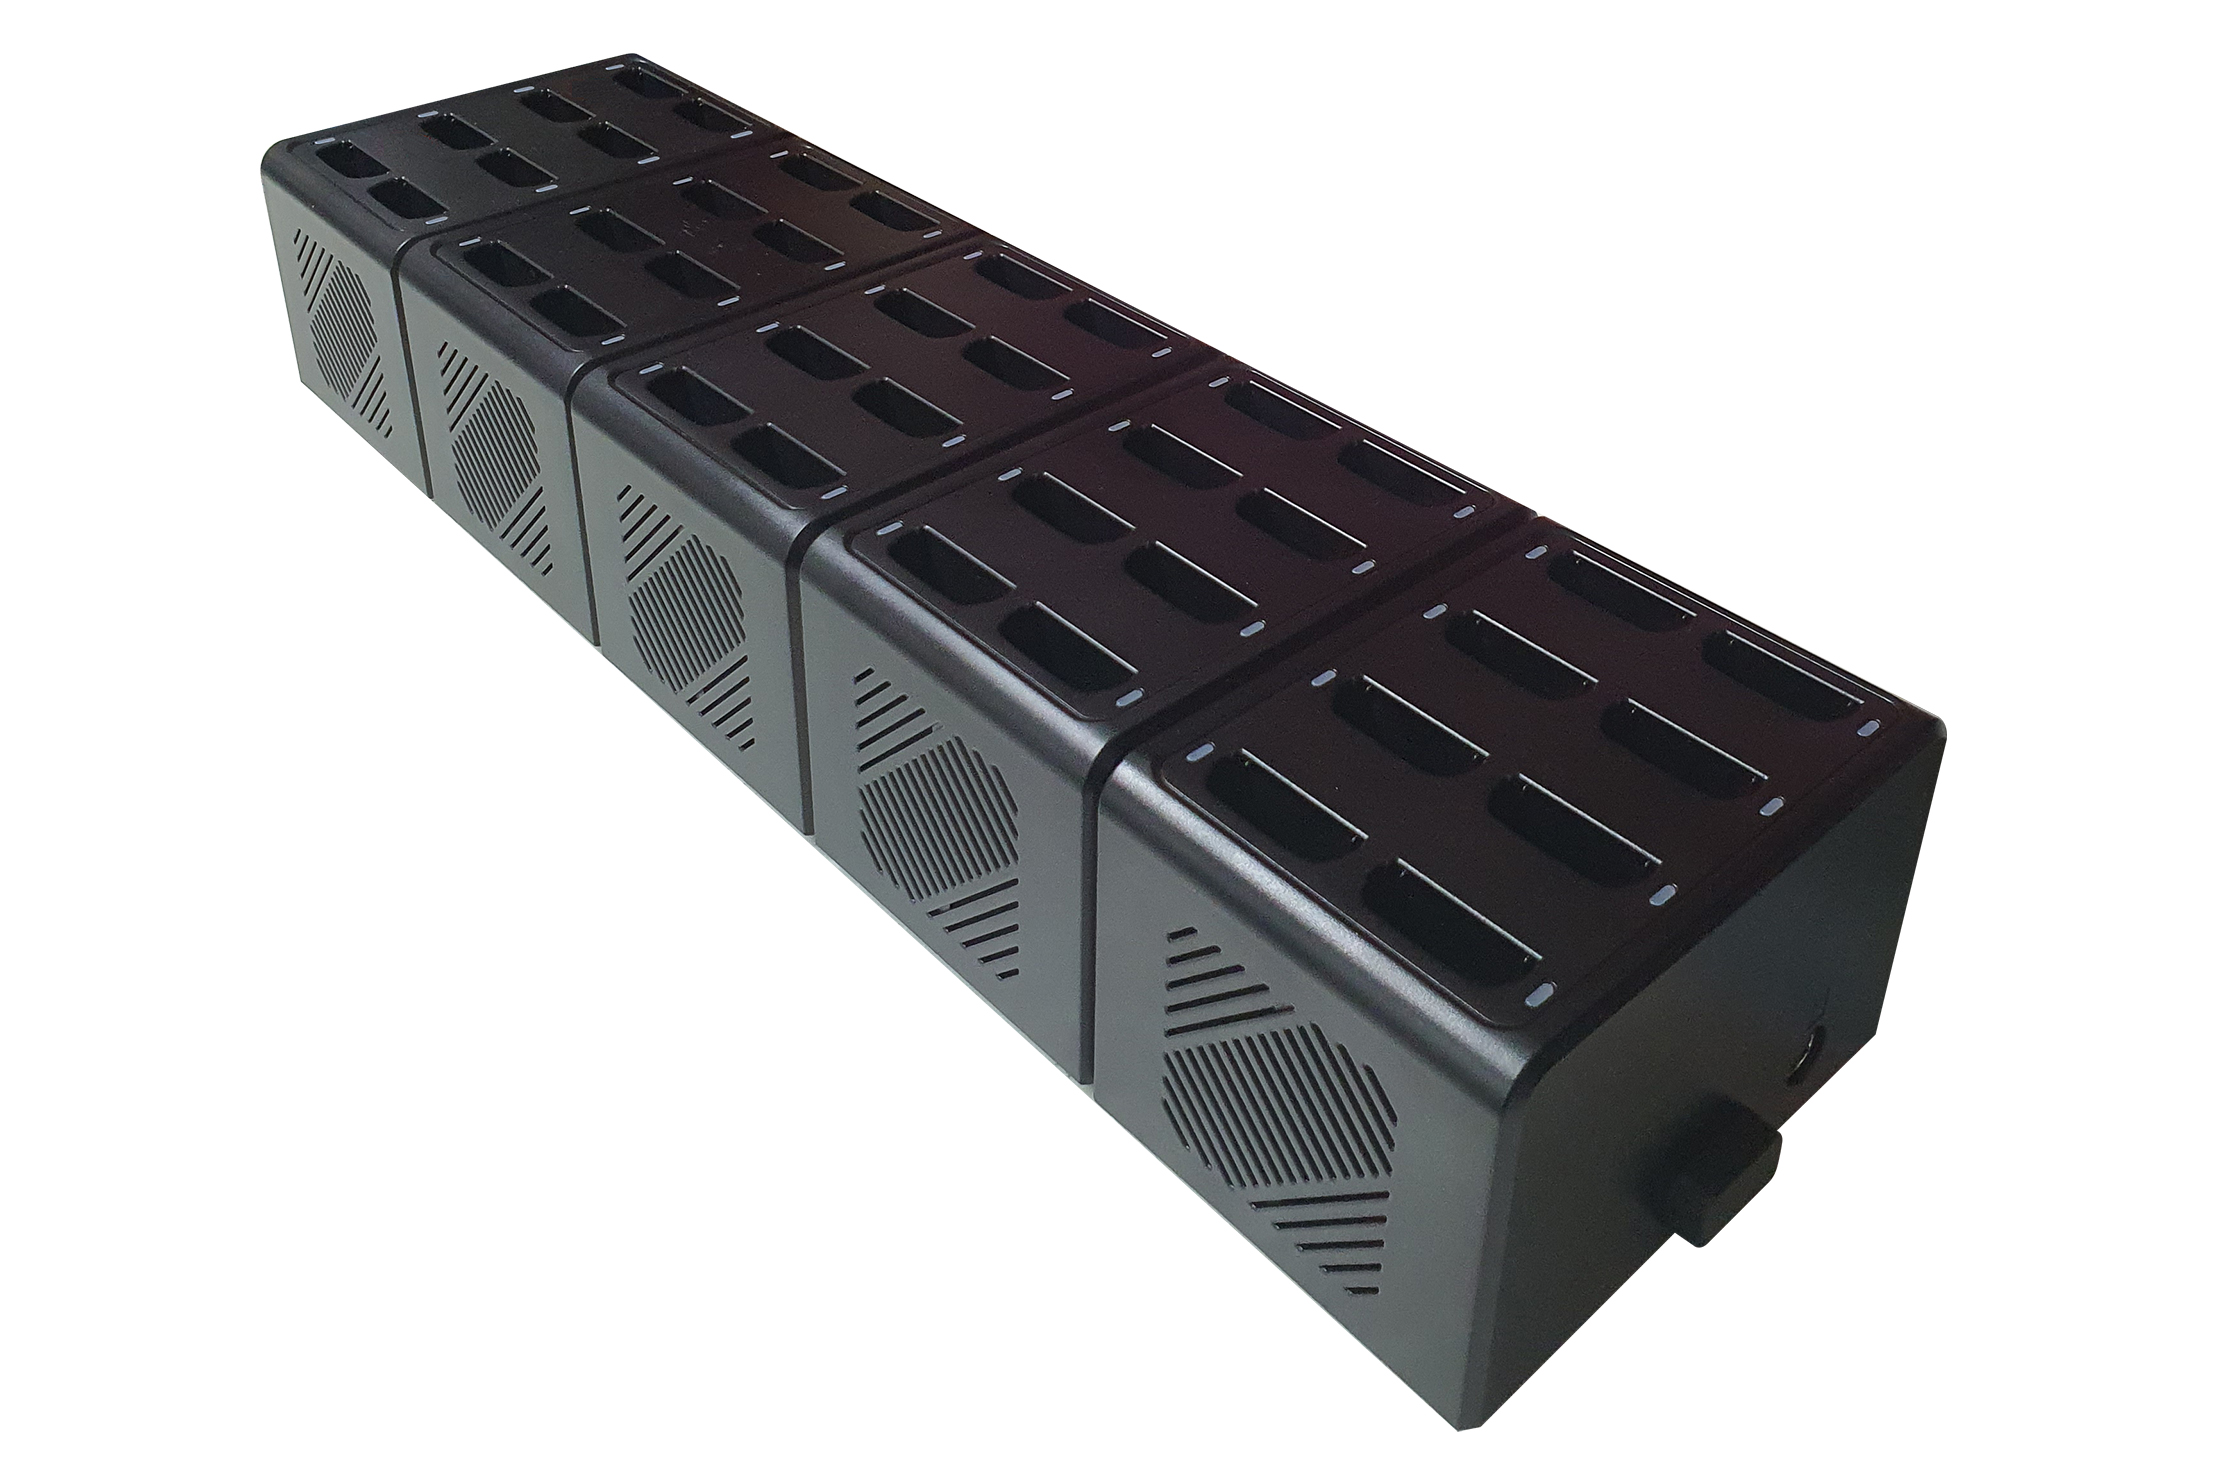 40 Slot Battery Charger